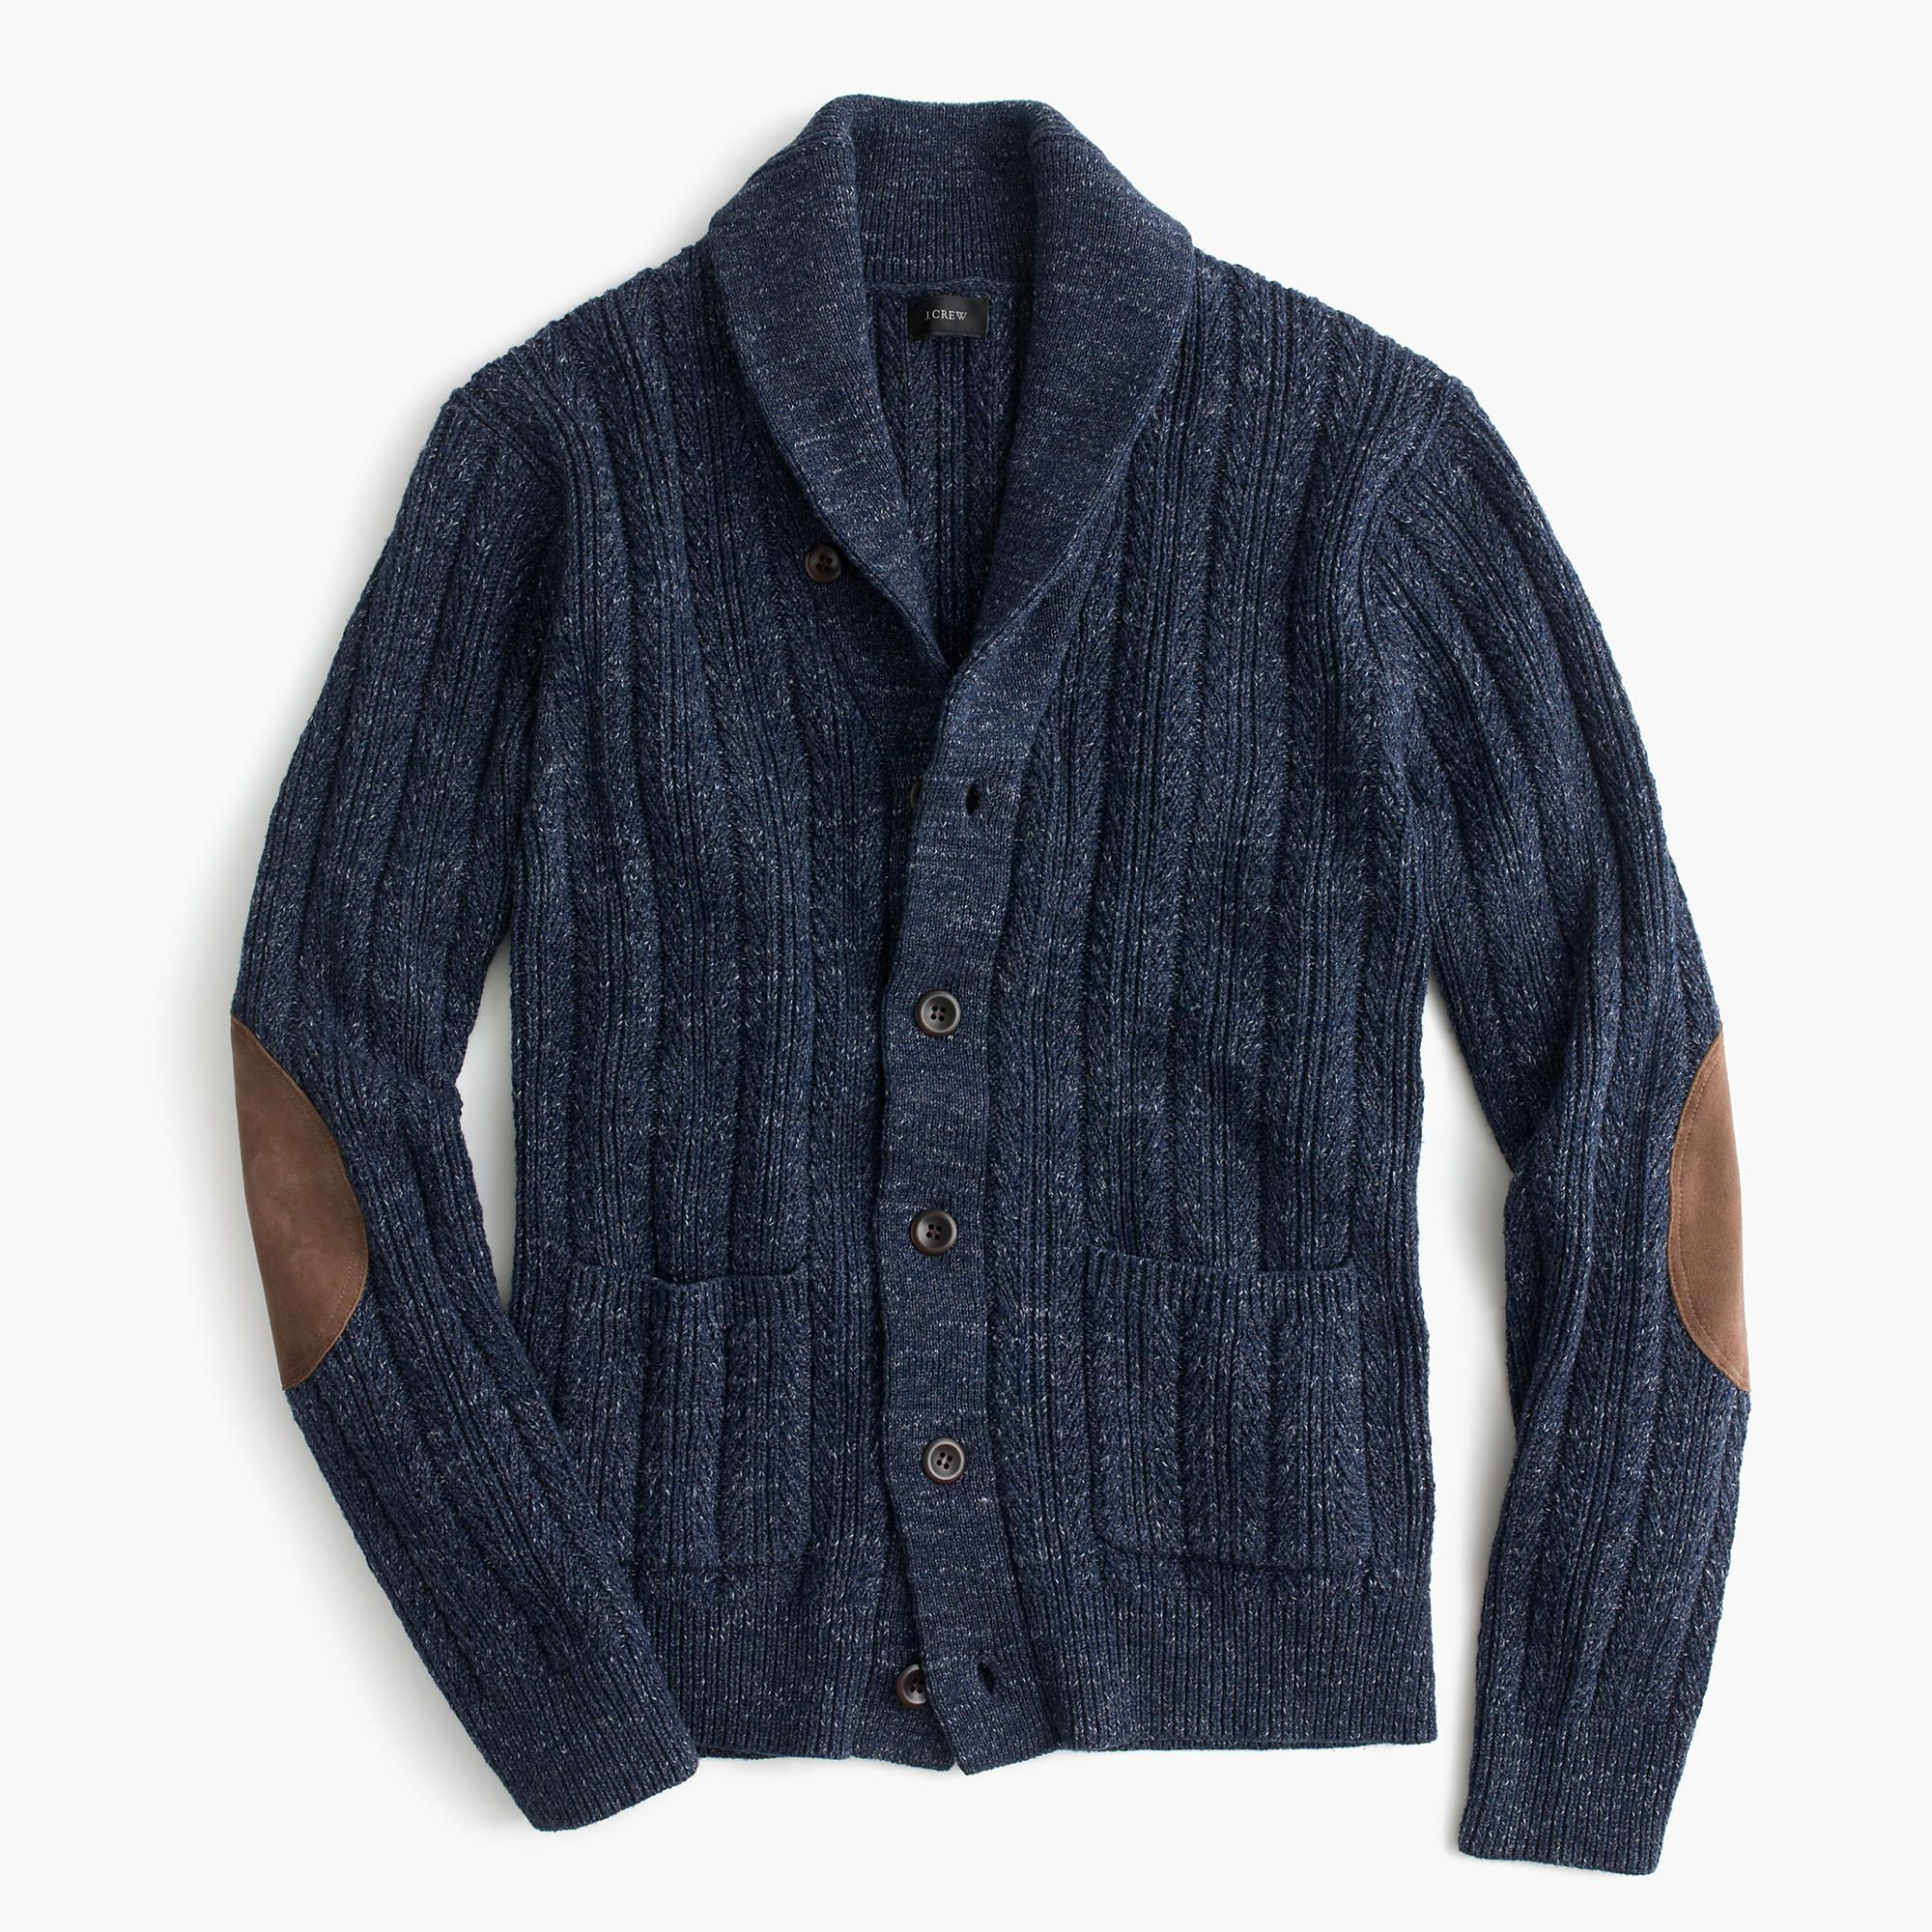 Cotton mariner shawl-collar cardigan sweater : cotton | J.Crew ...